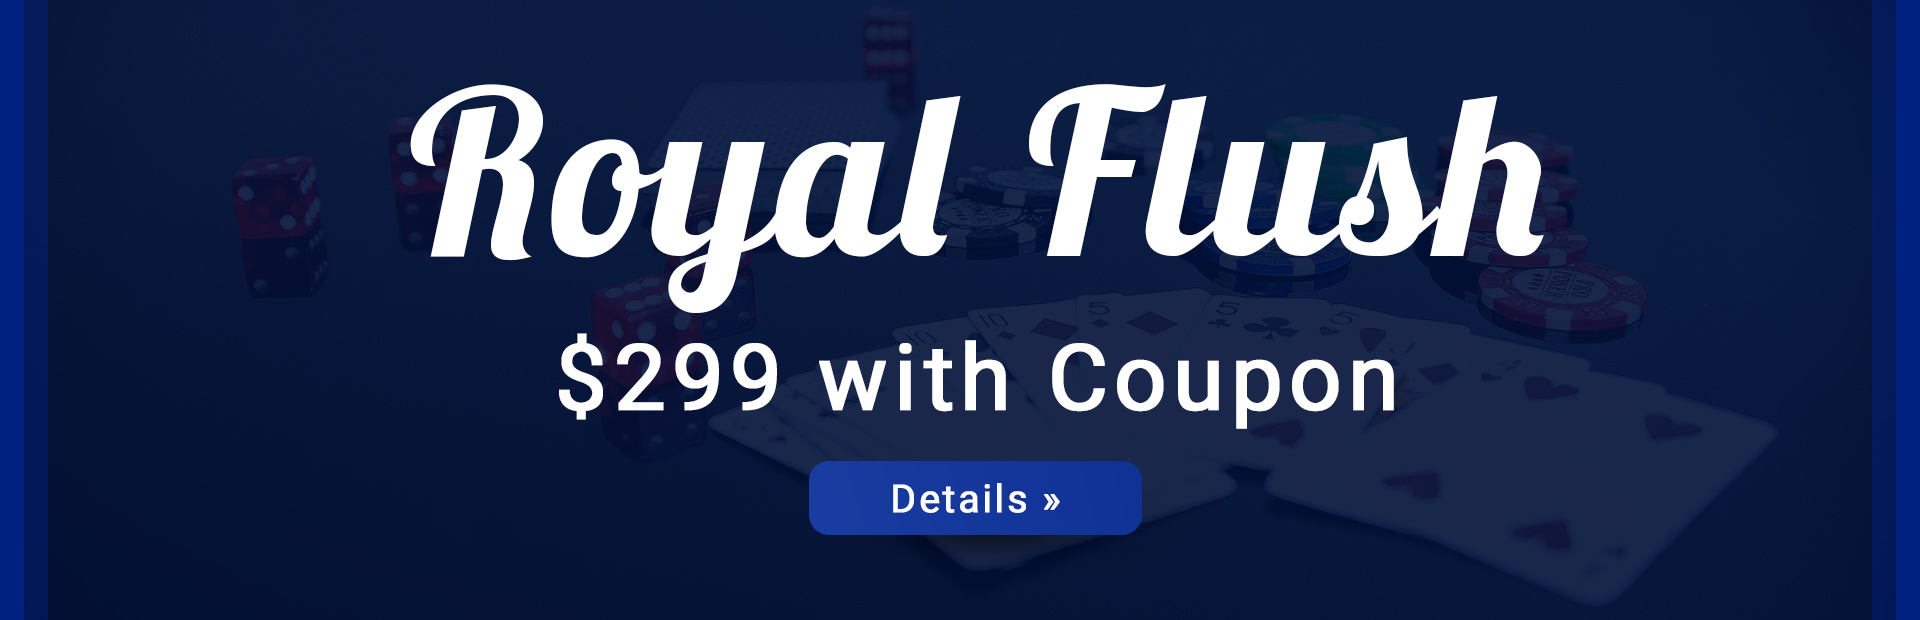 $299 Royal Flush Special: Click here for details.